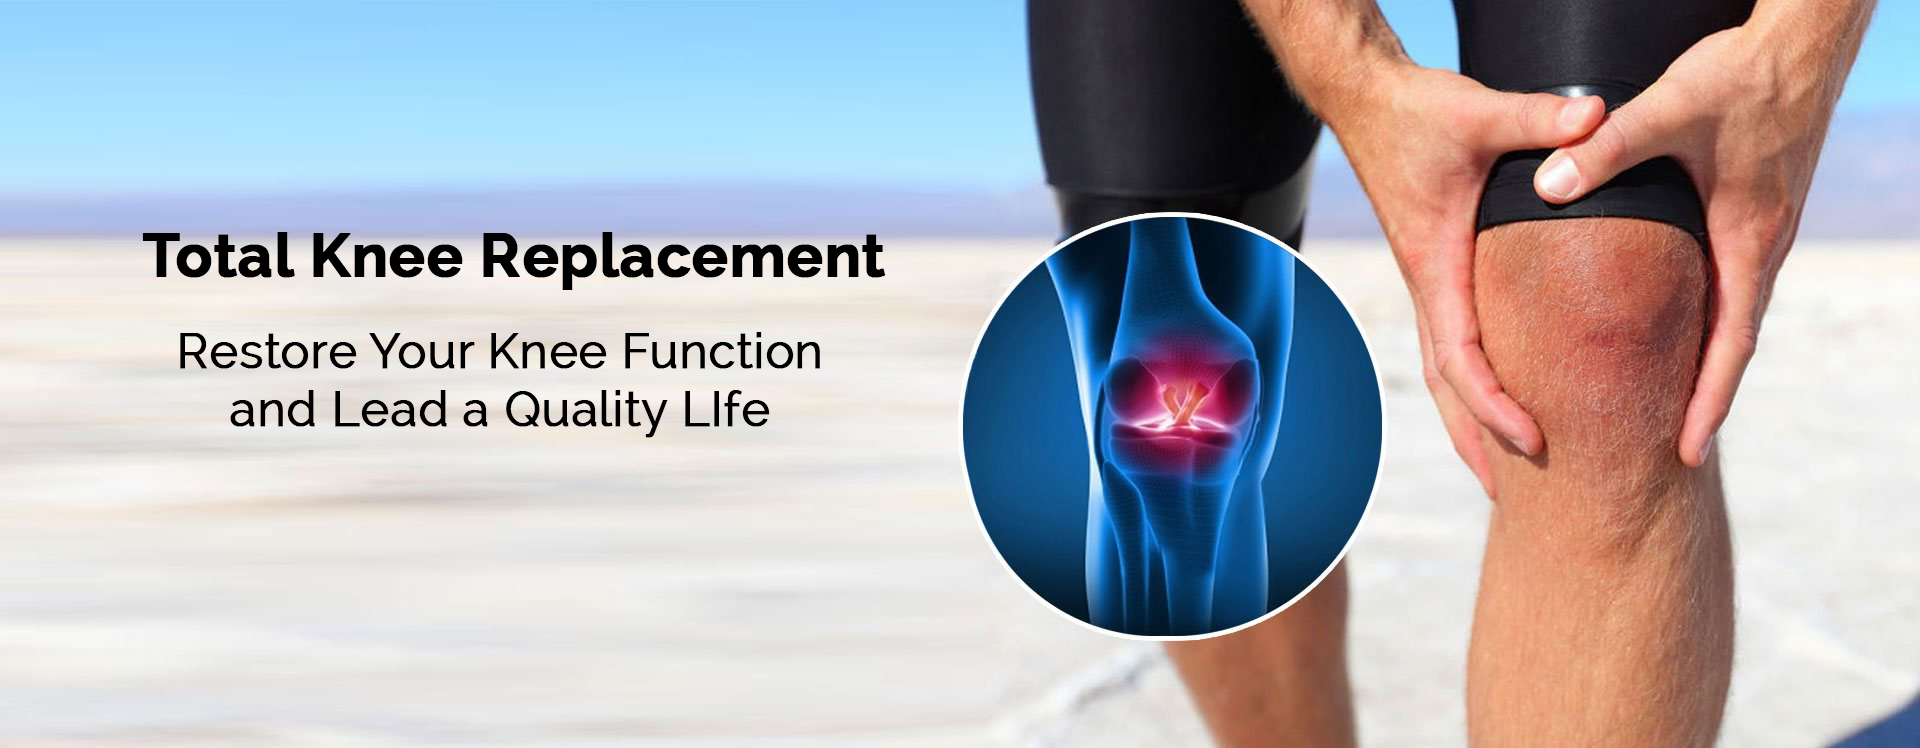 Knee Replacement Surgery Cost in Hyderabad